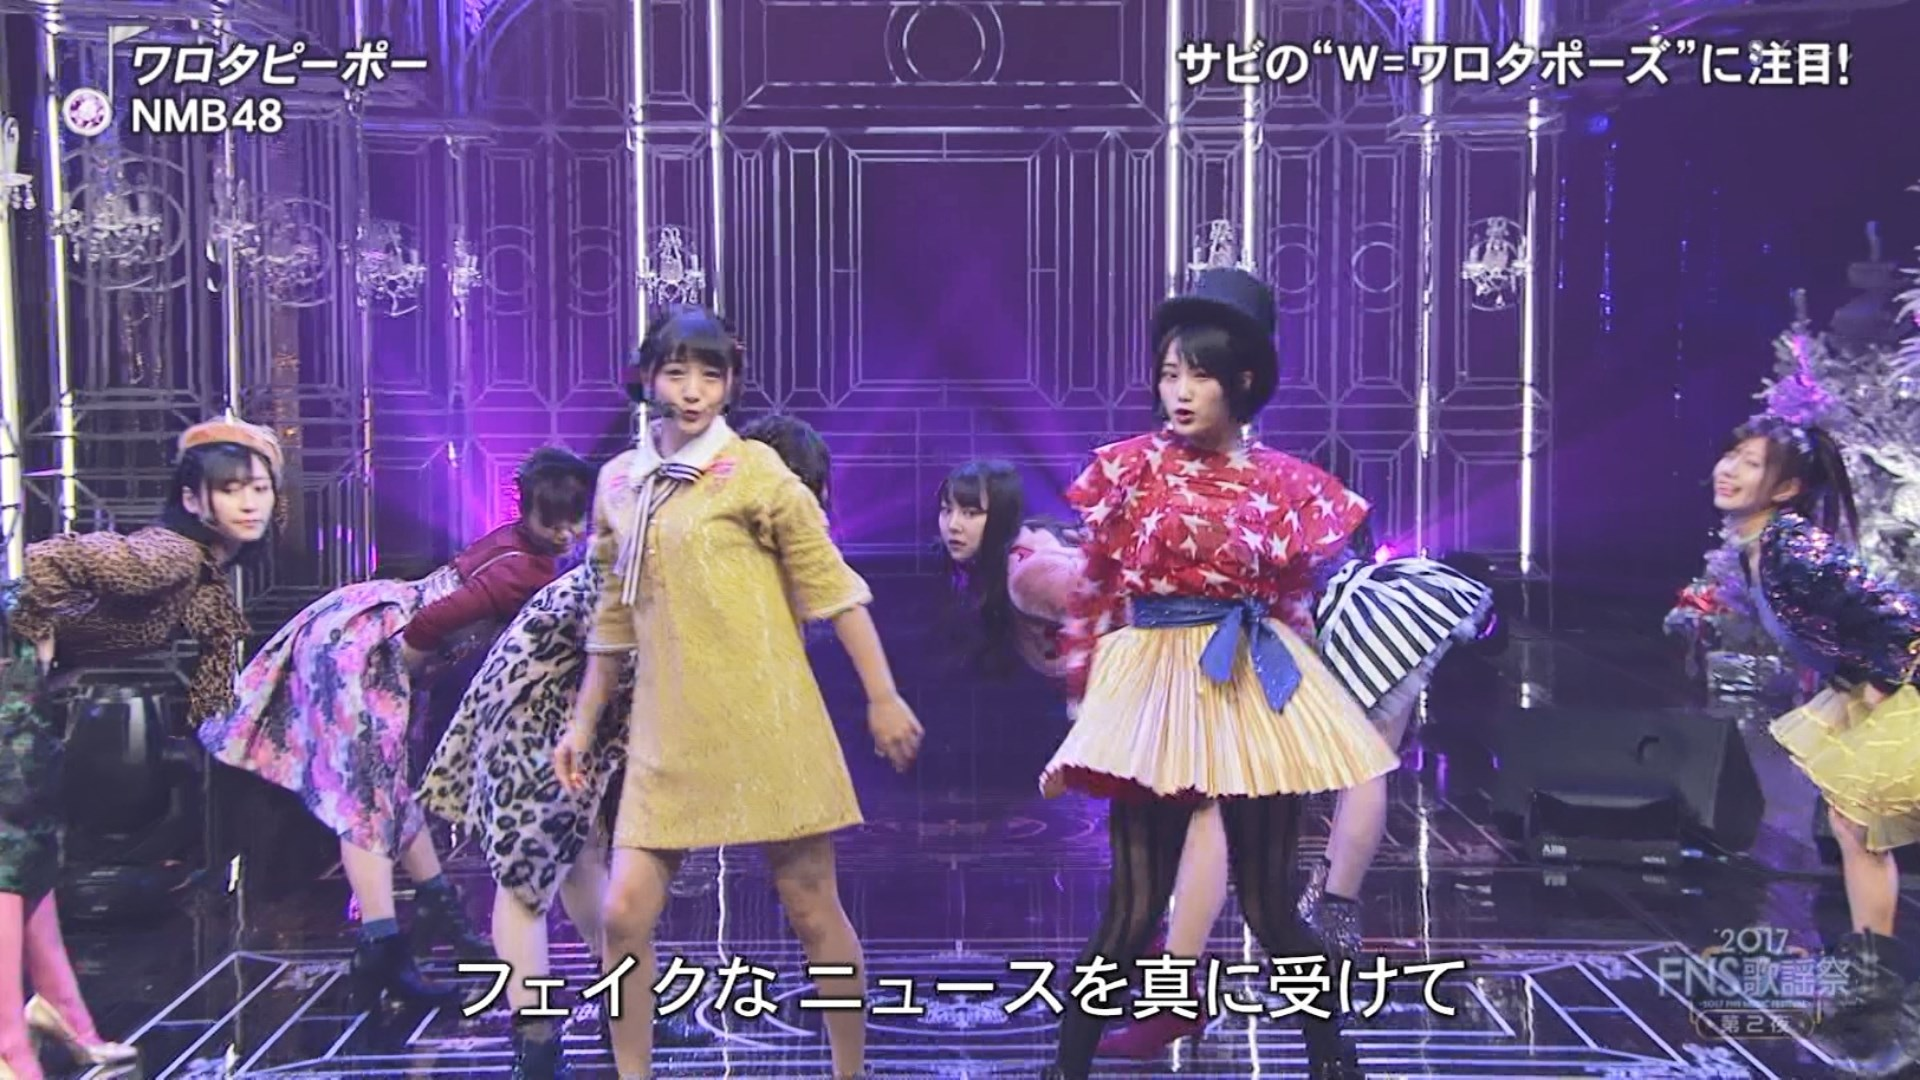 2017FNS歌謡祭第2夜・NMB48ワロタピーポーキャプ-027